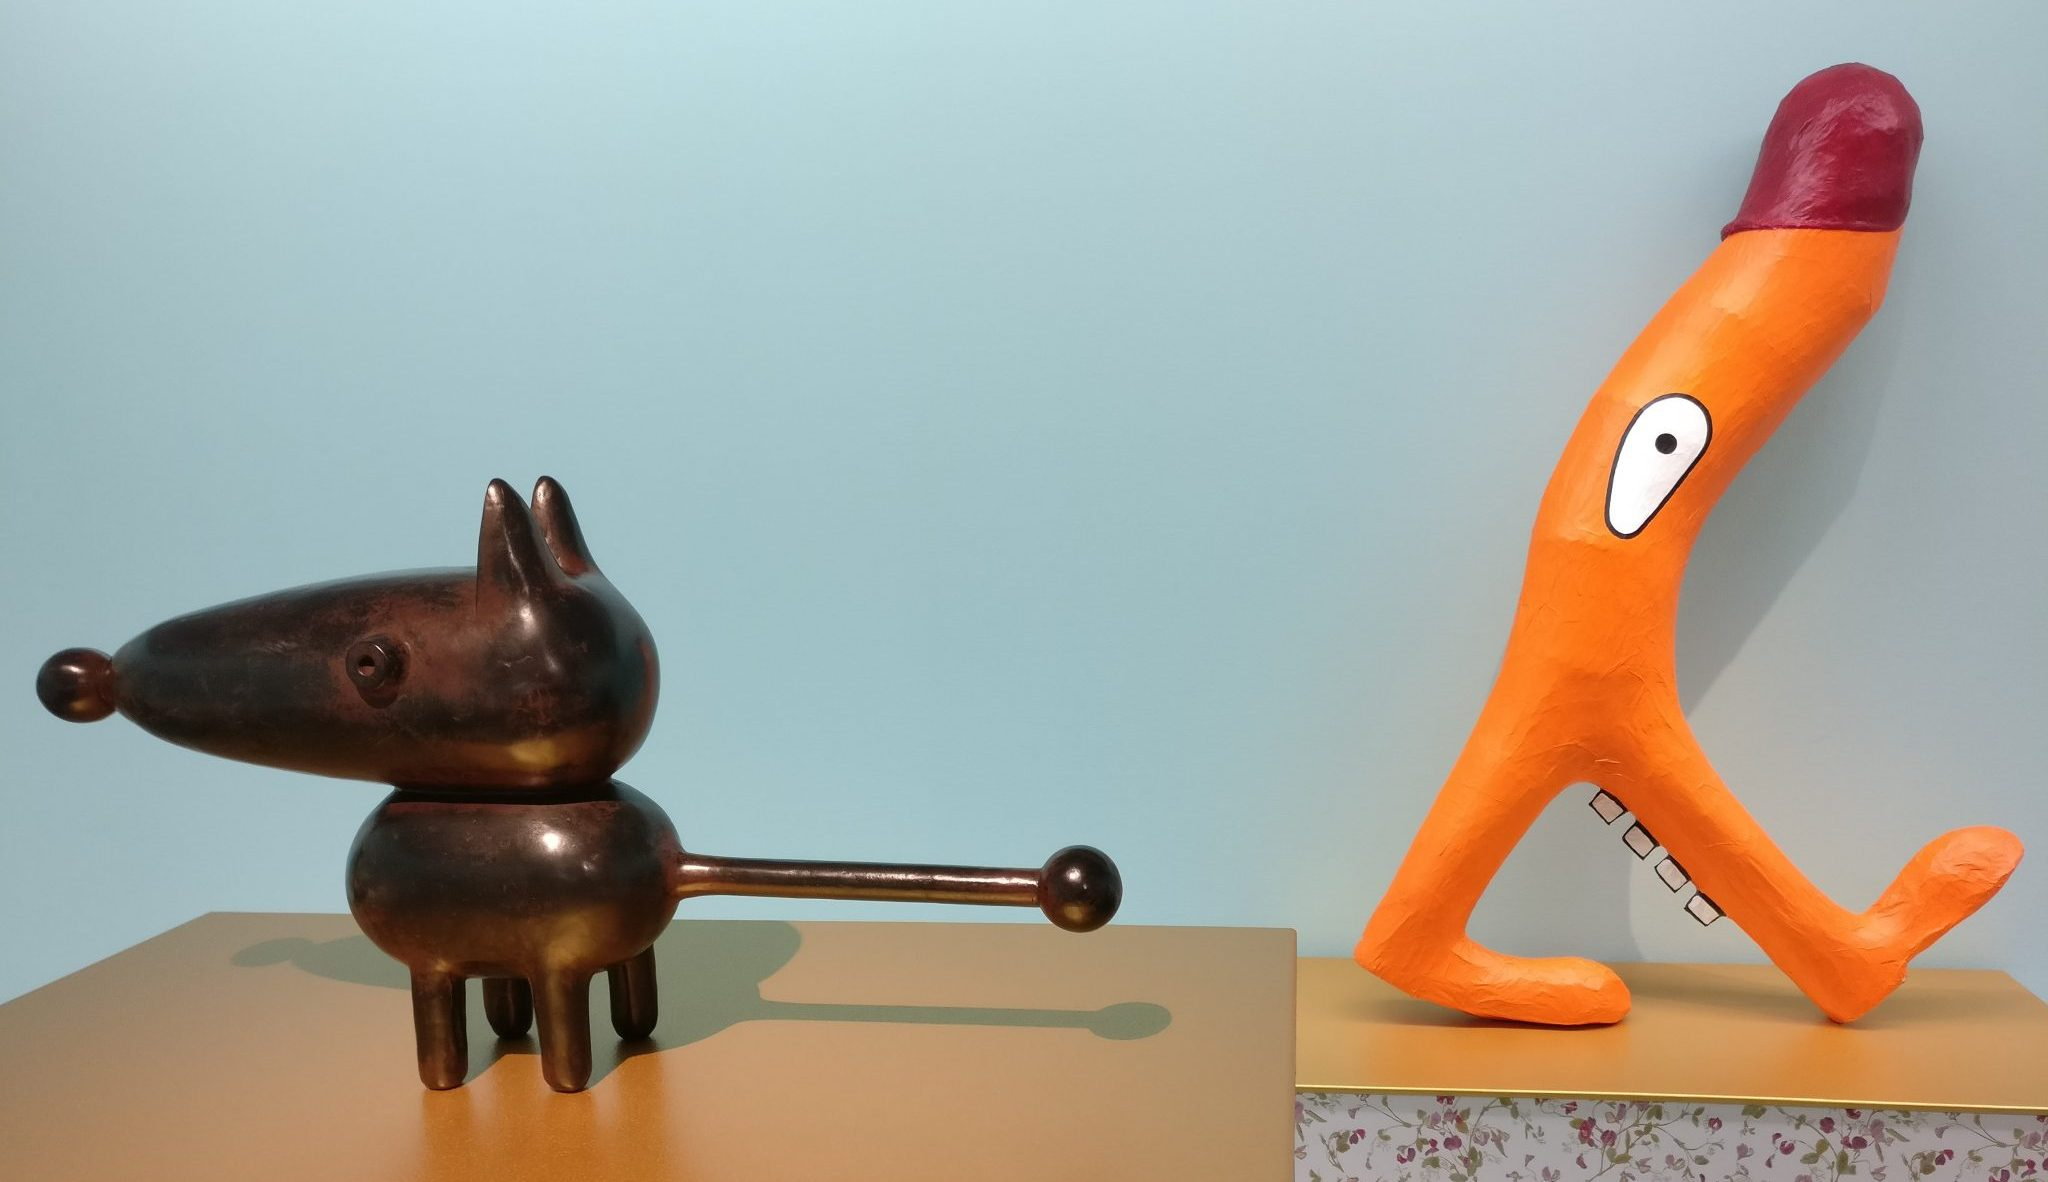 Joost van den Toorn: on the left, Atomic Dog, bronze from 2012; on the right, Hey ho lets go, paper mache from 1984